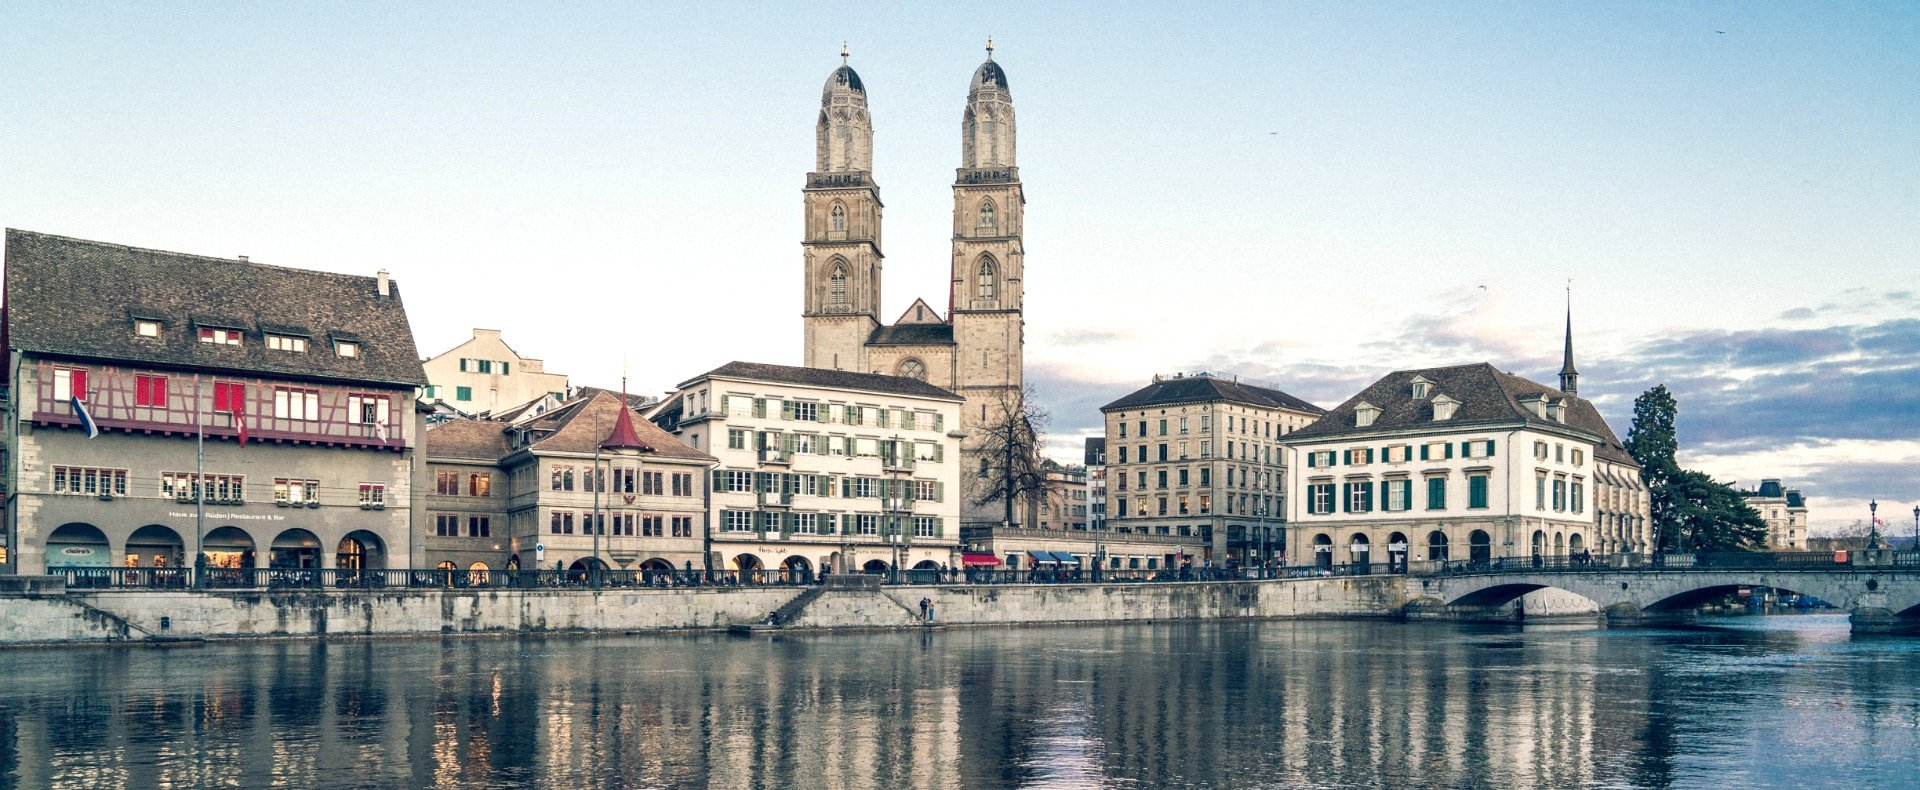 Zurich Grossmunster Church, Switzerland